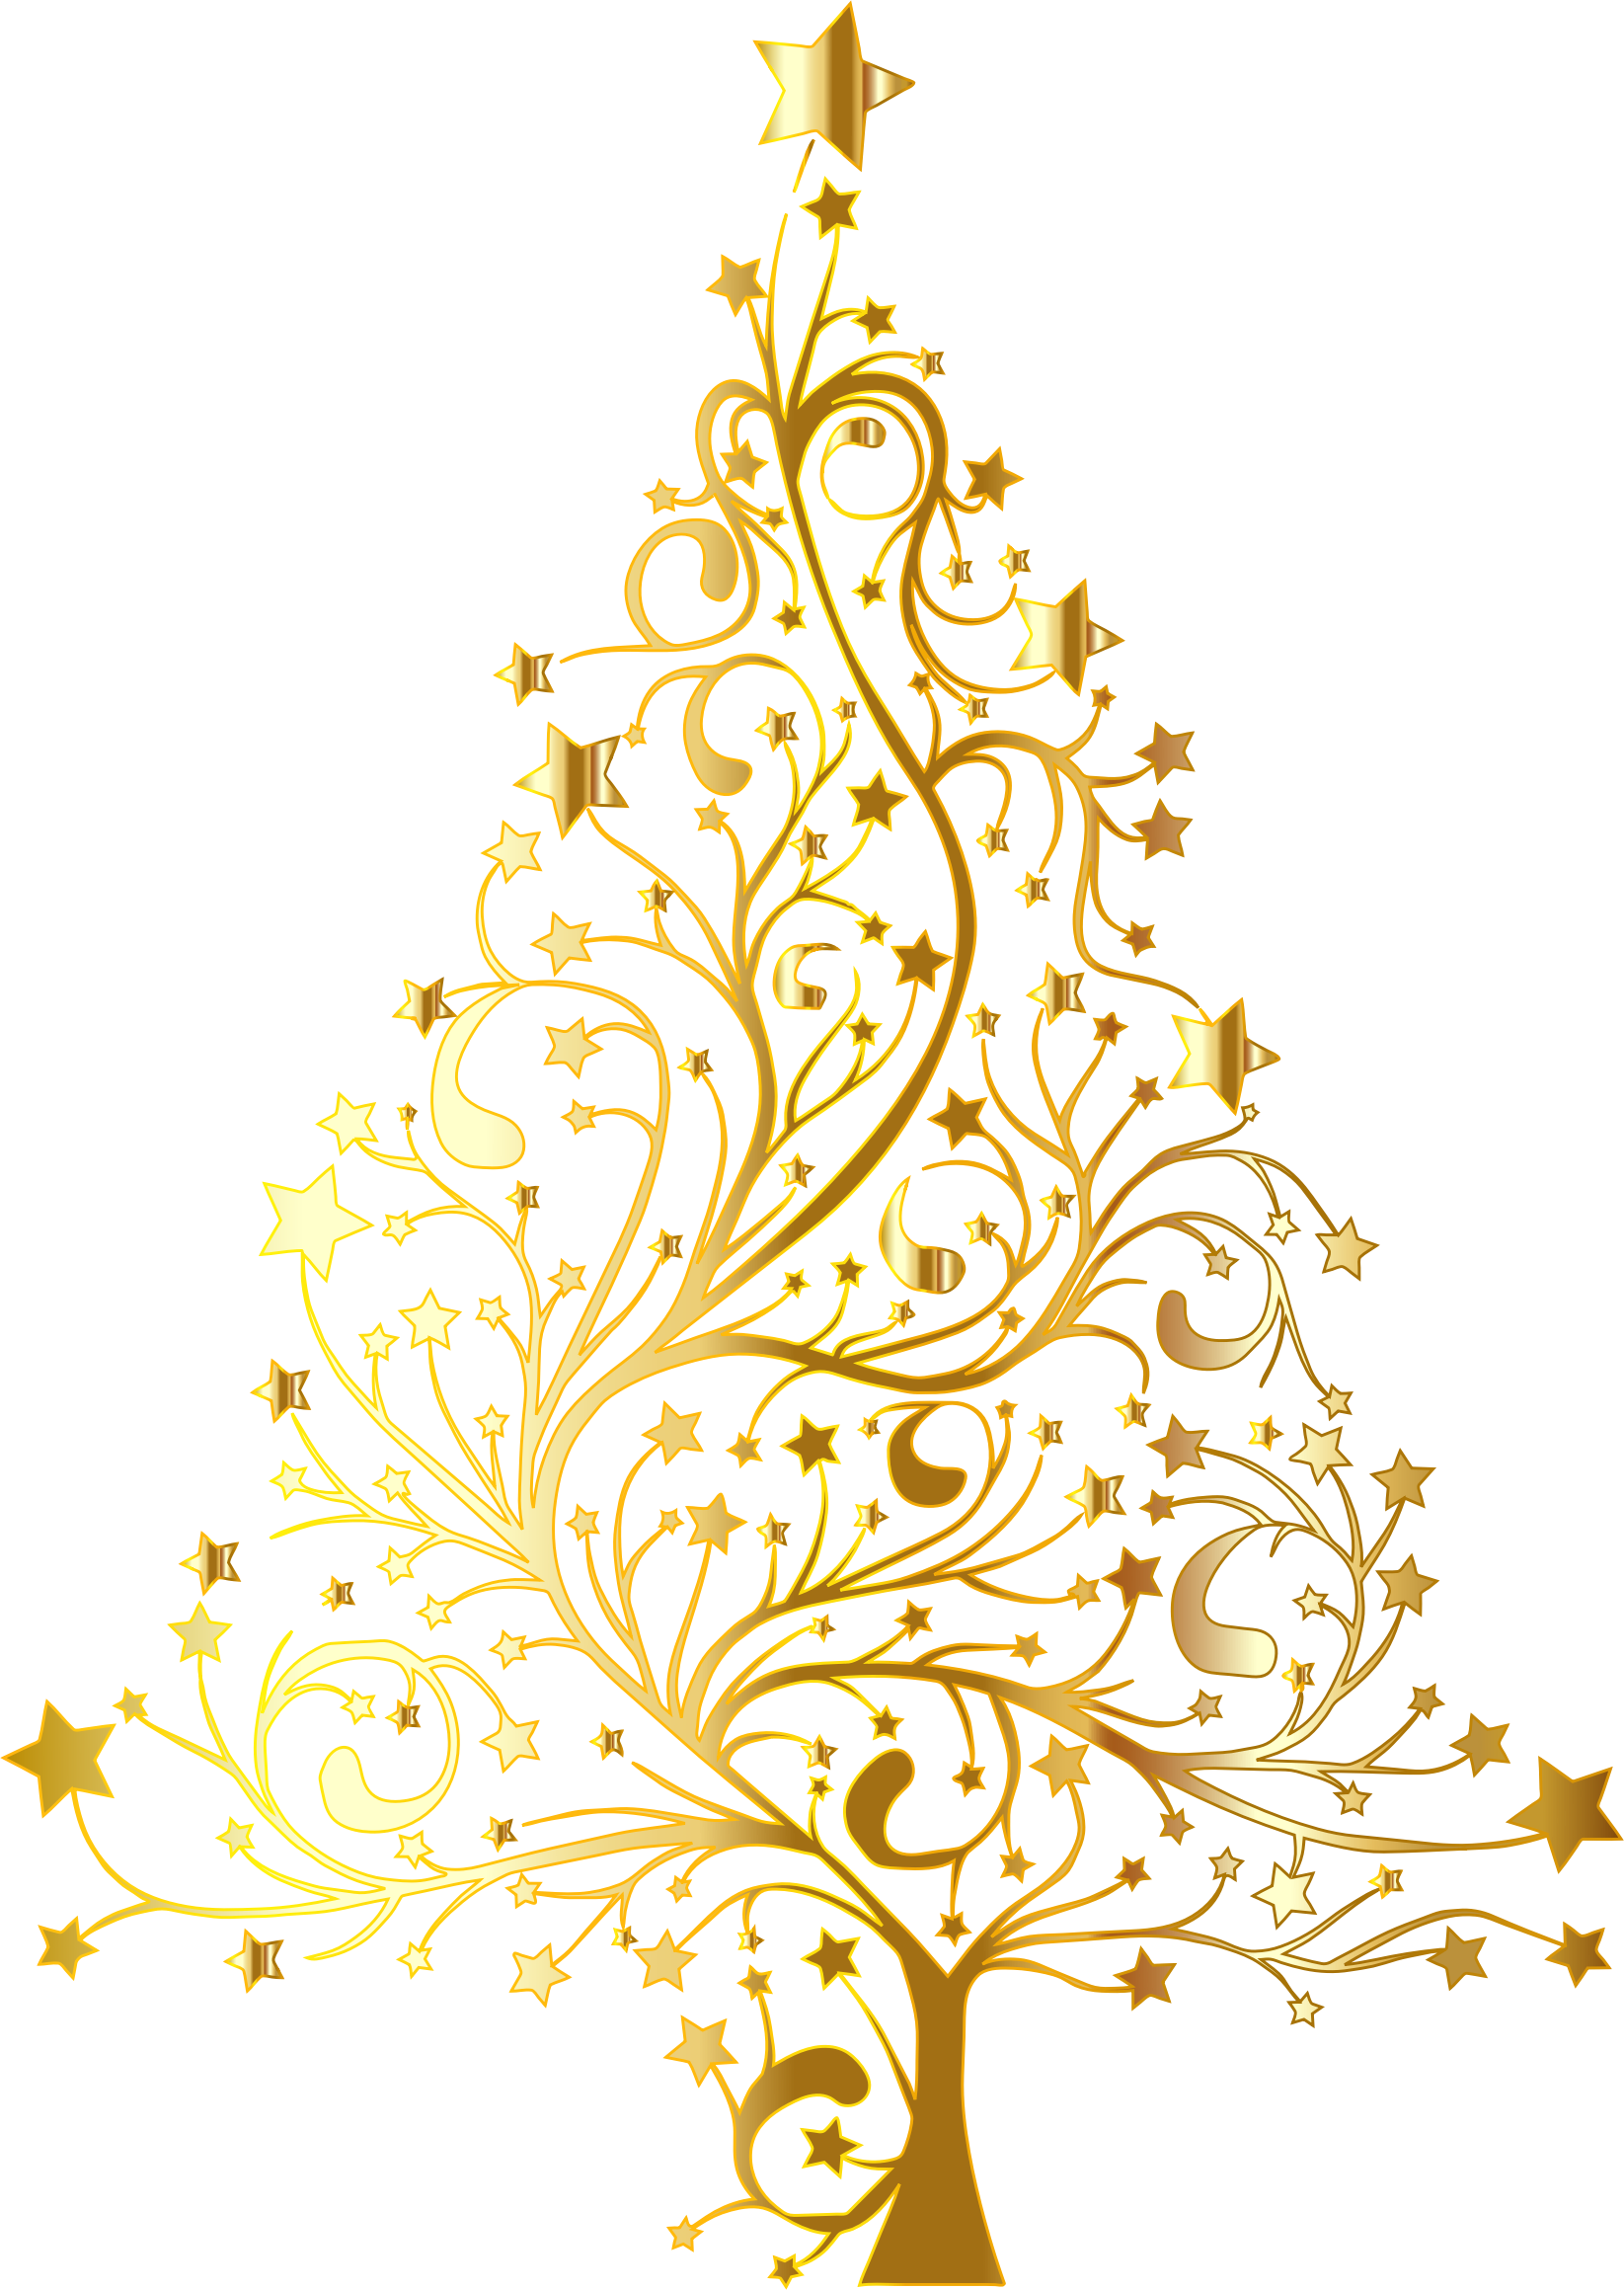 Starry Christmas Tree Gold No Background.